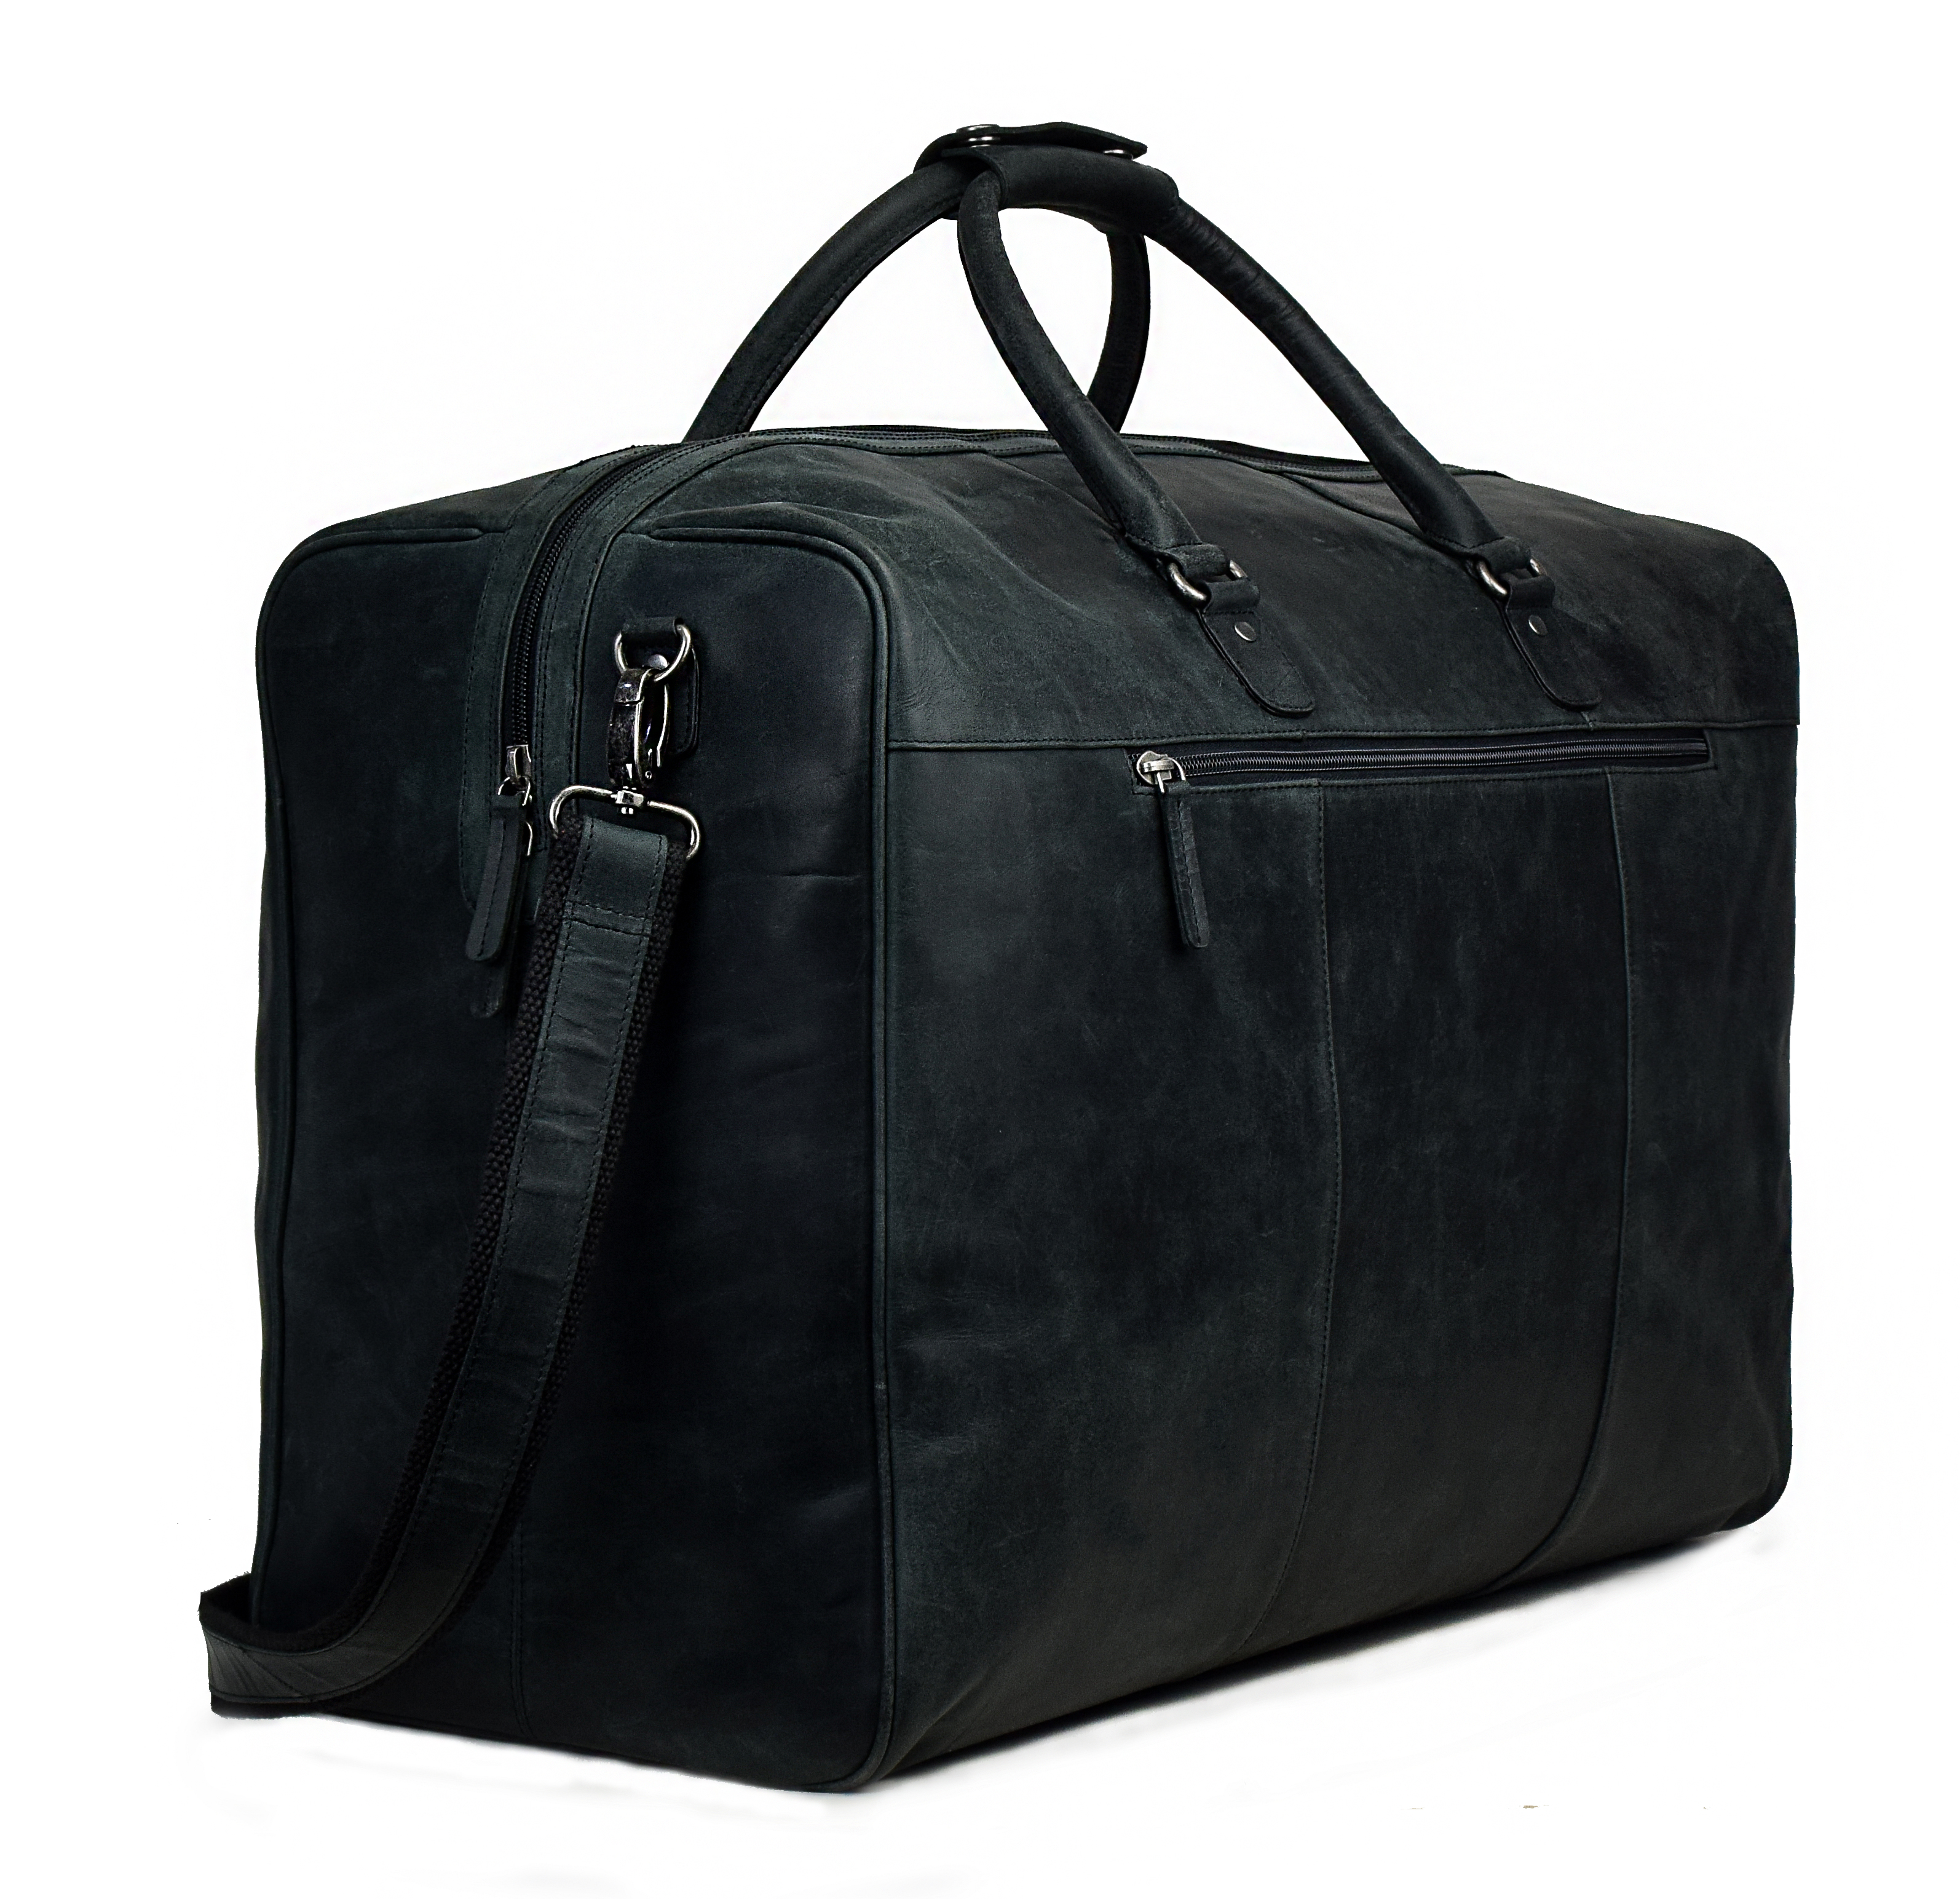 Travel bag by Dolphin Leathers